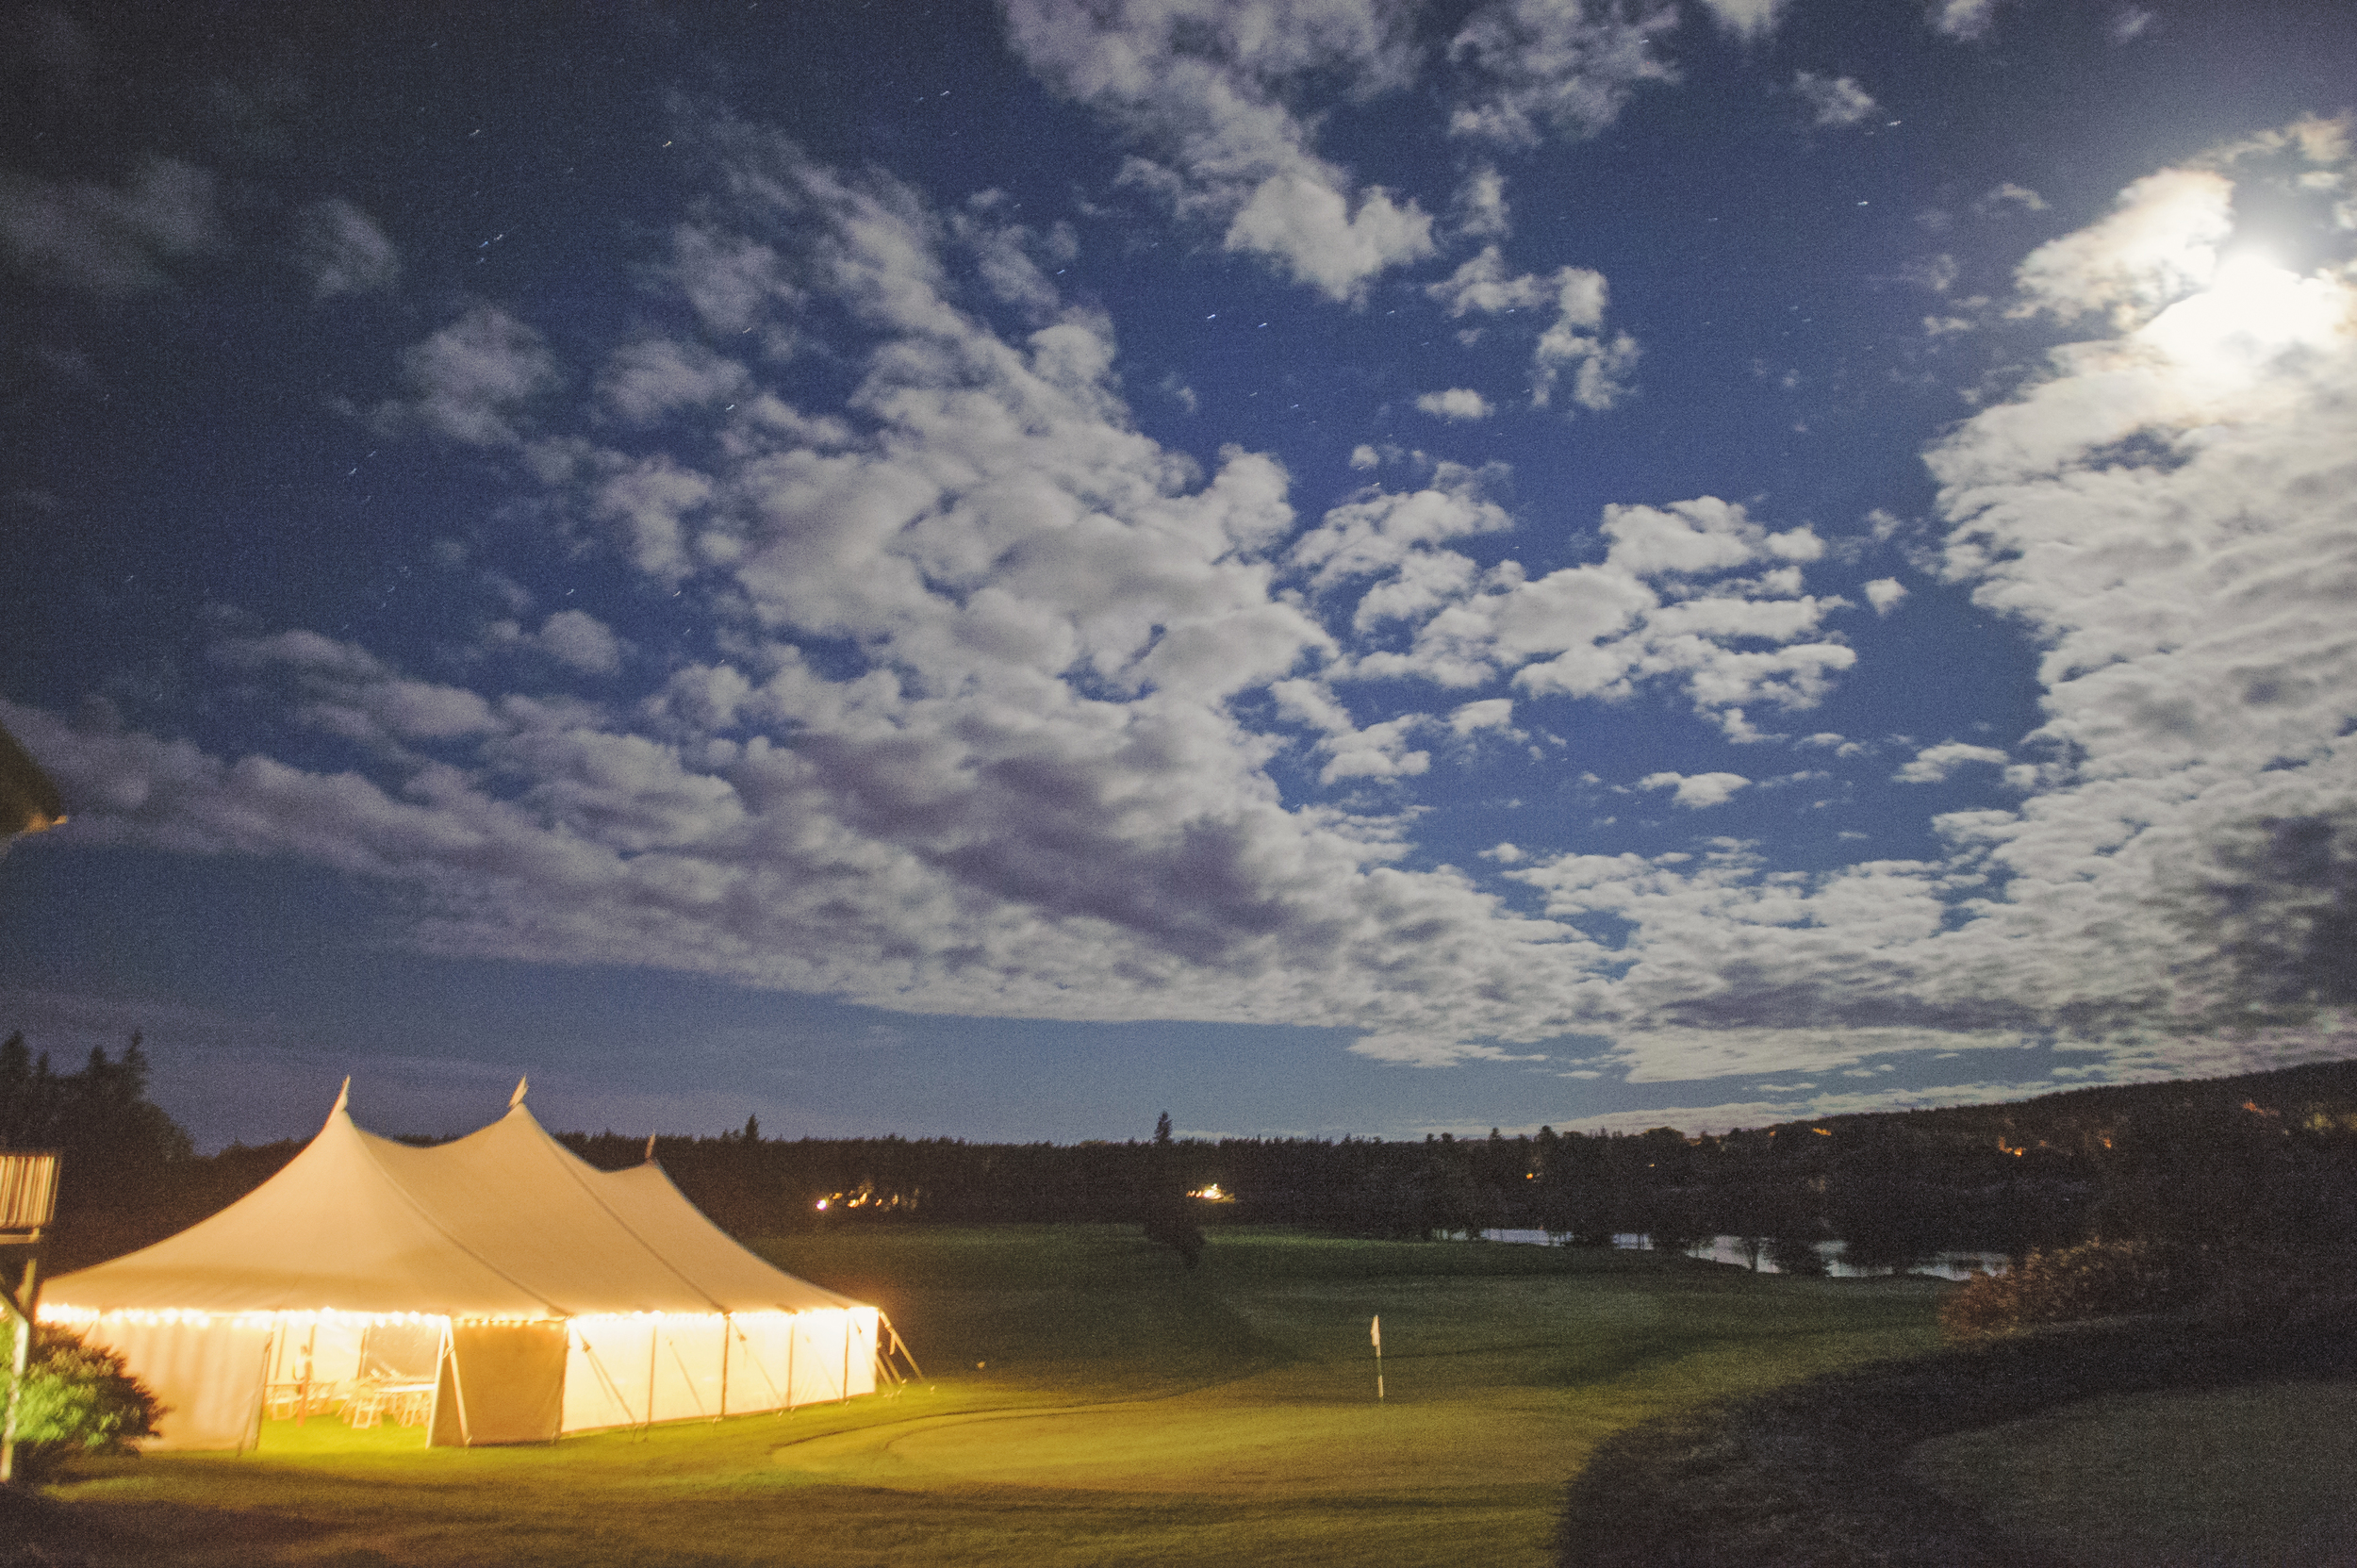 Maine Seasons Events tented wedding photo Michelle Turner.jpg